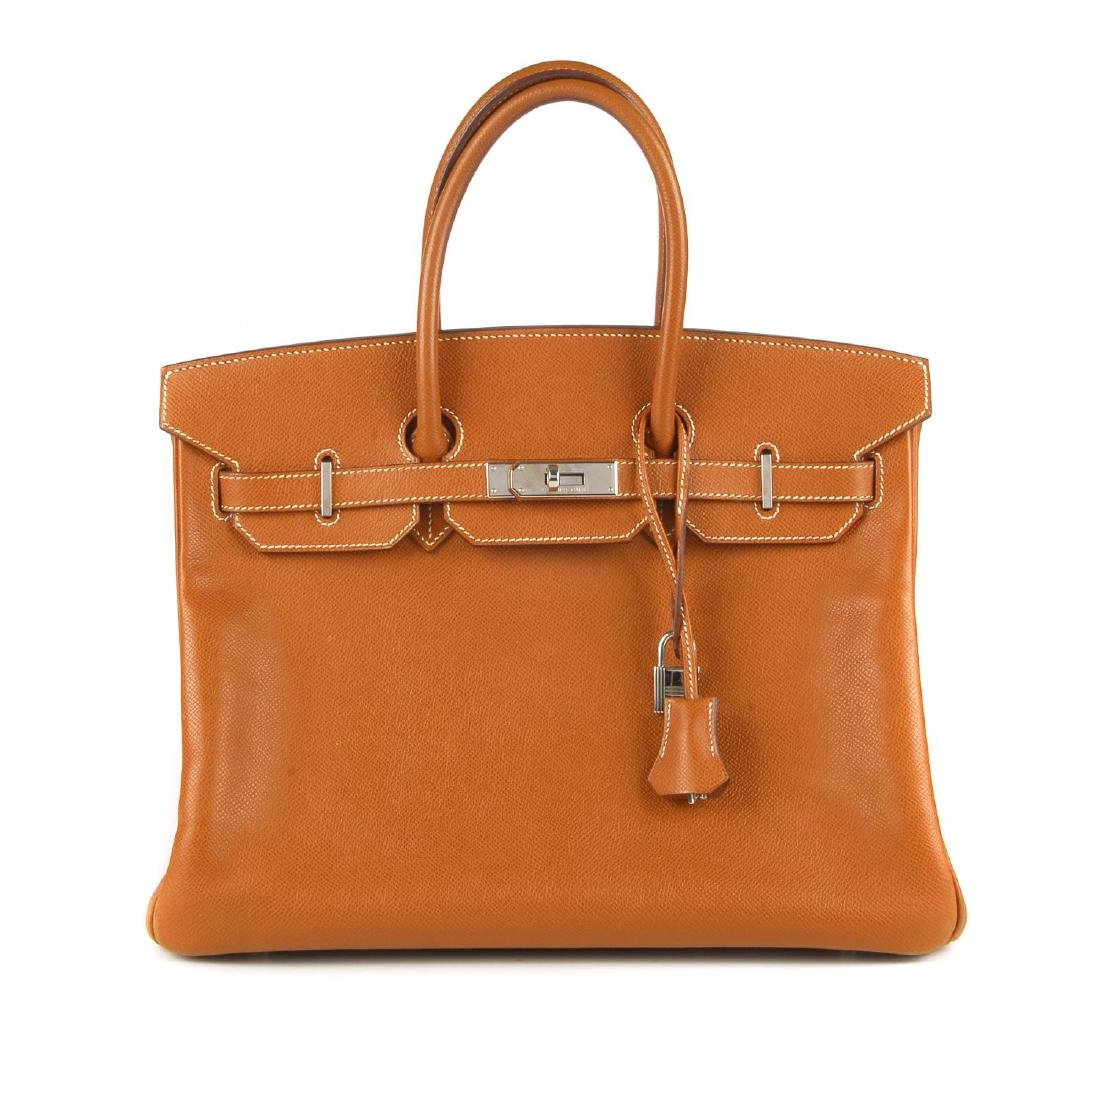 HERMÈS - a 2007 tan Epson Birkin 35 handbag. Crafted